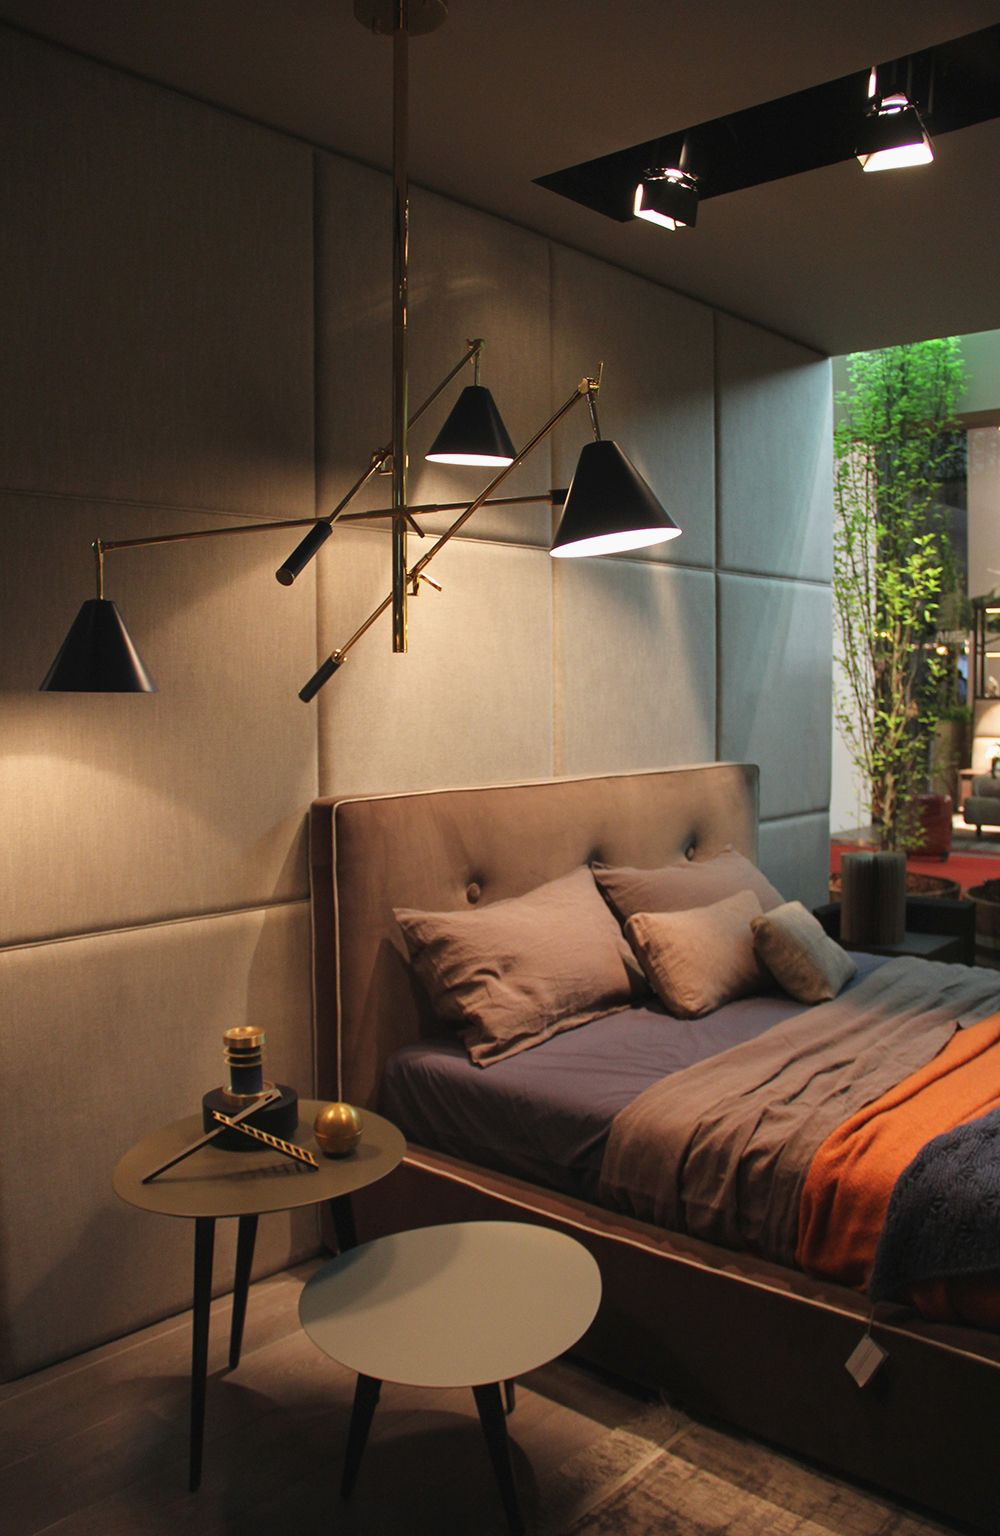 The Bedroom Ideas That You Will See At Salone del Mobile 2019 6 salone del mobile 2019 The Bedroom Ideas That You Will See At Salone del Mobile 2019 The Bedroom Ideas That You Will See At Salone del Mobile 2019 6